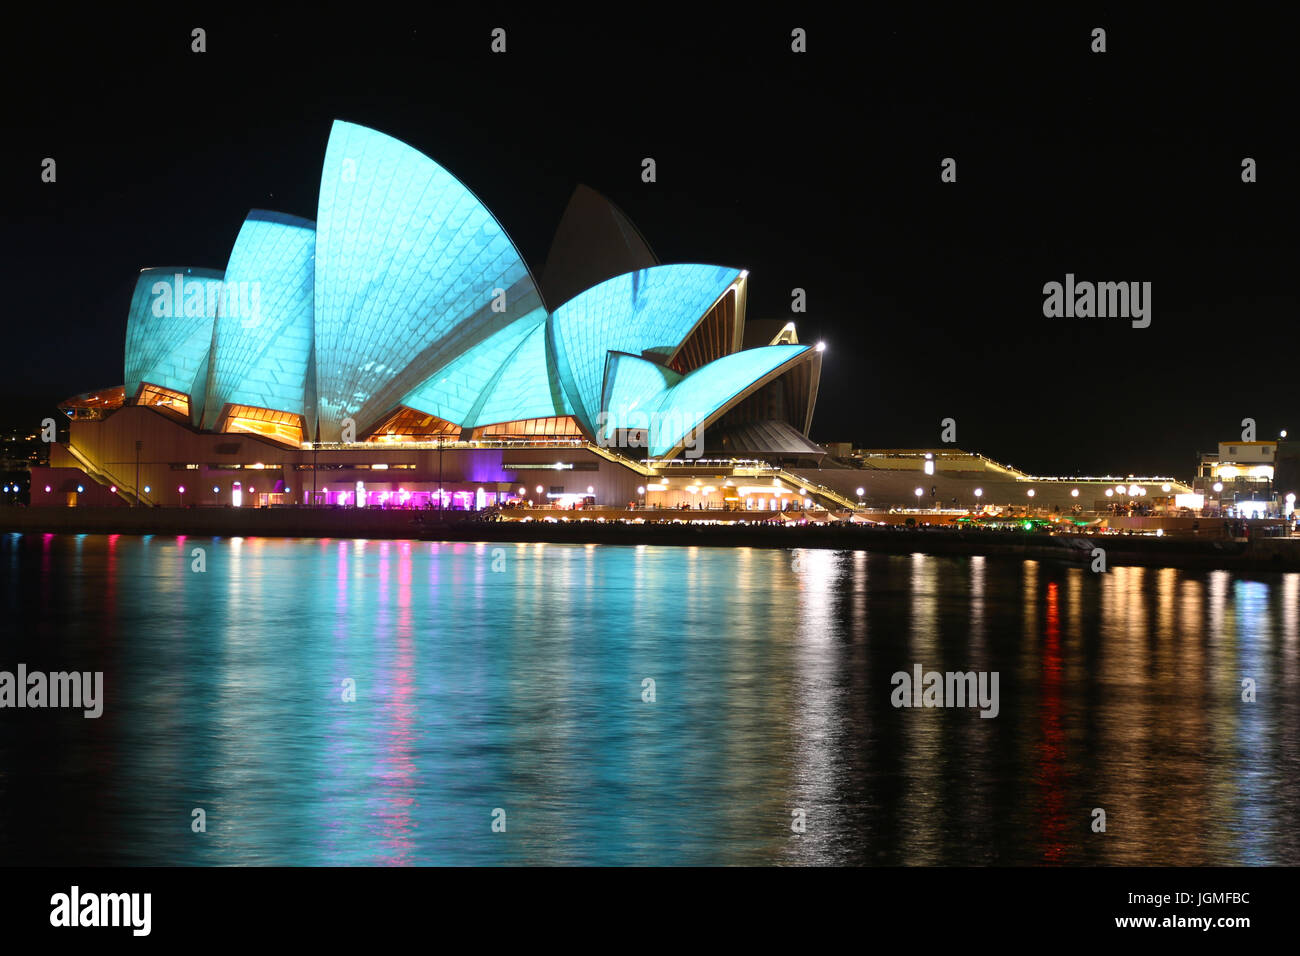 Oper von Sydney, New South Wales, Australien in der Nacht Stockbild